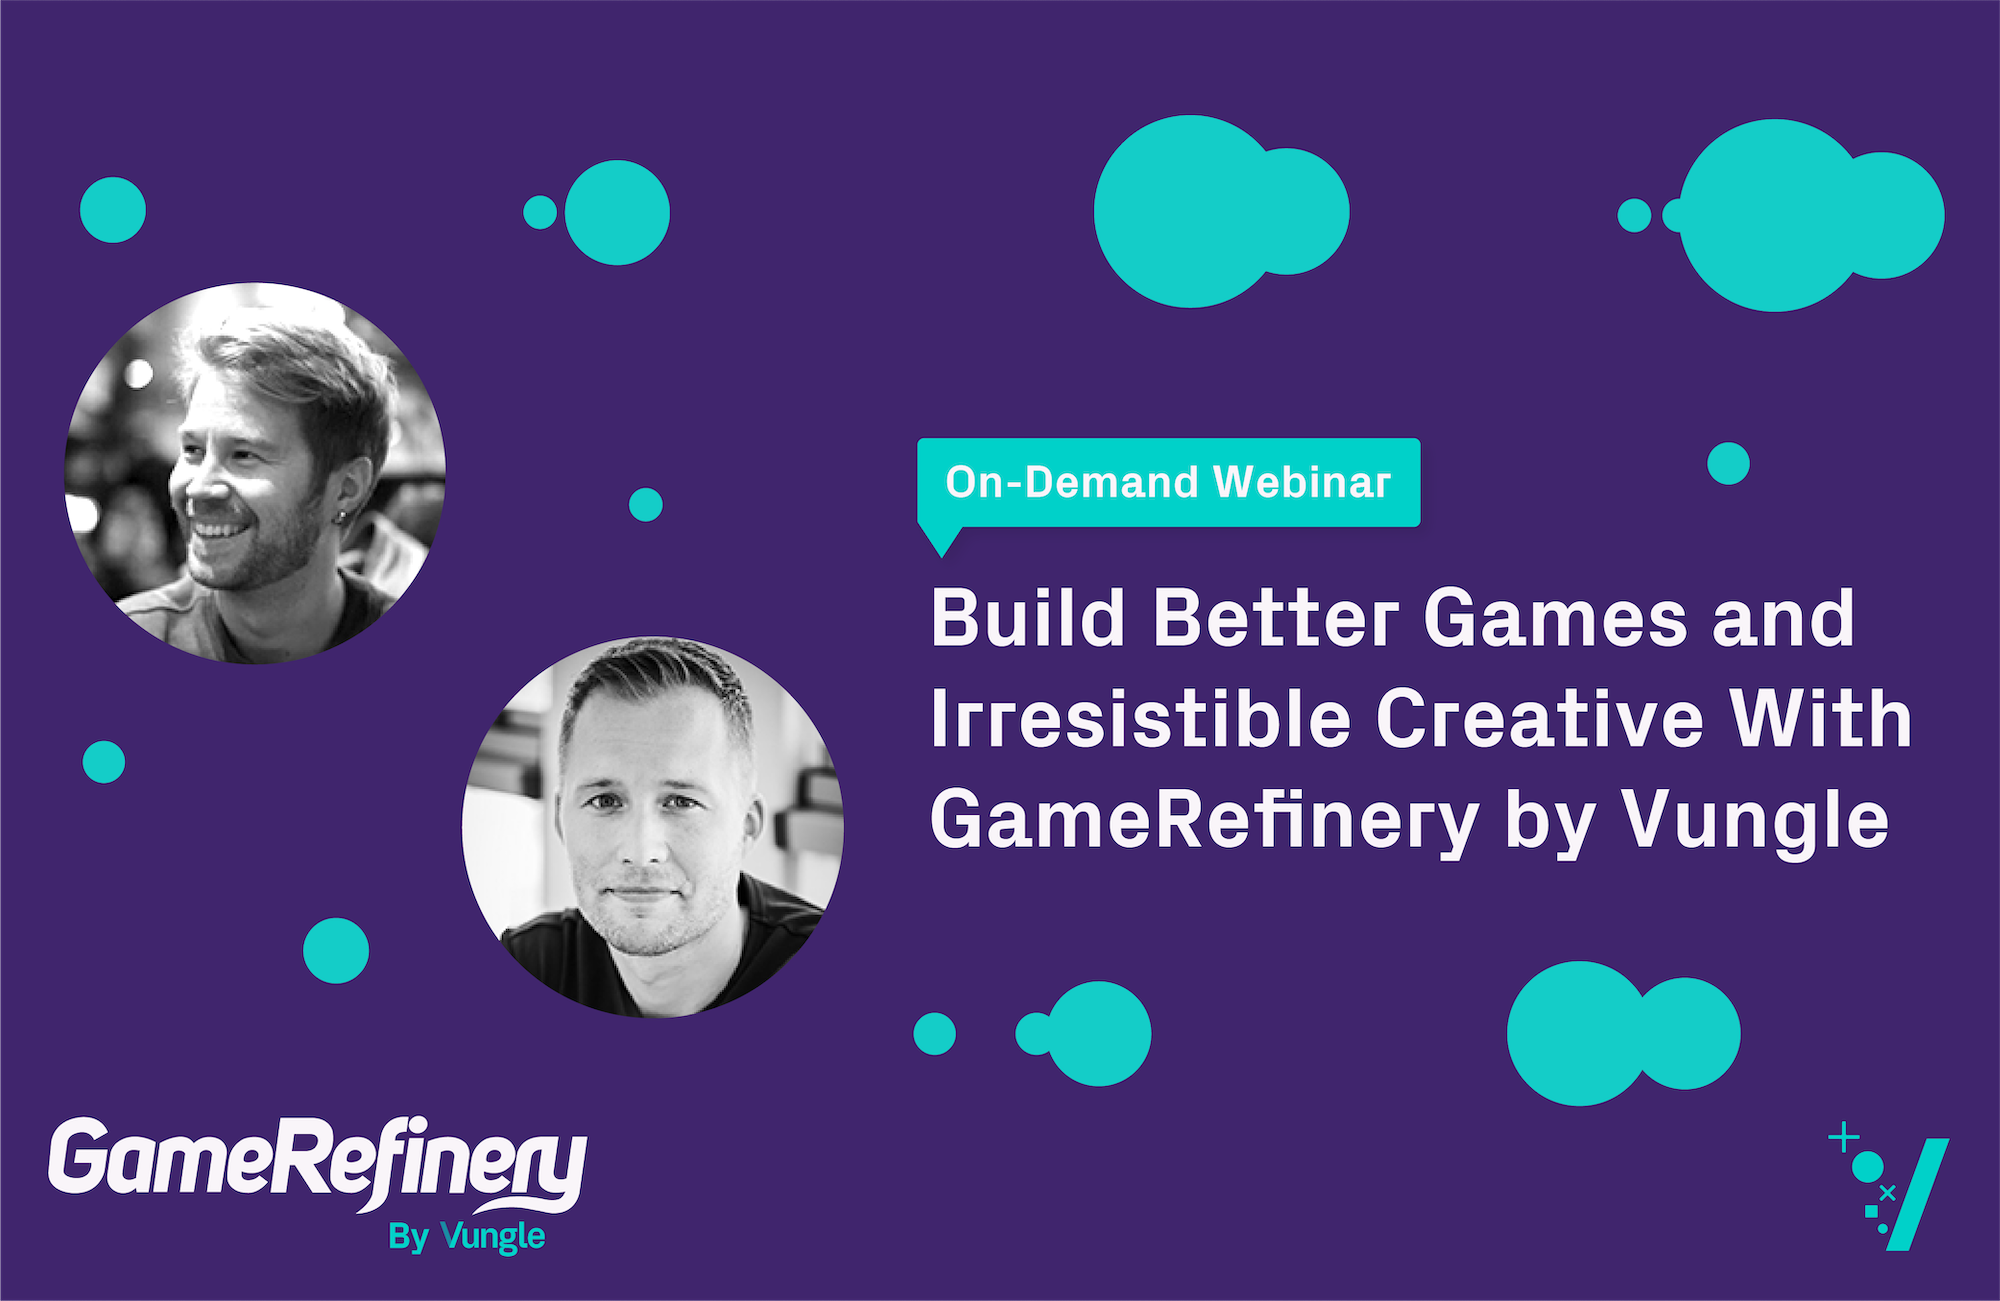 Build Better Games and Irresistible Creative With GameRefinery by Vungle